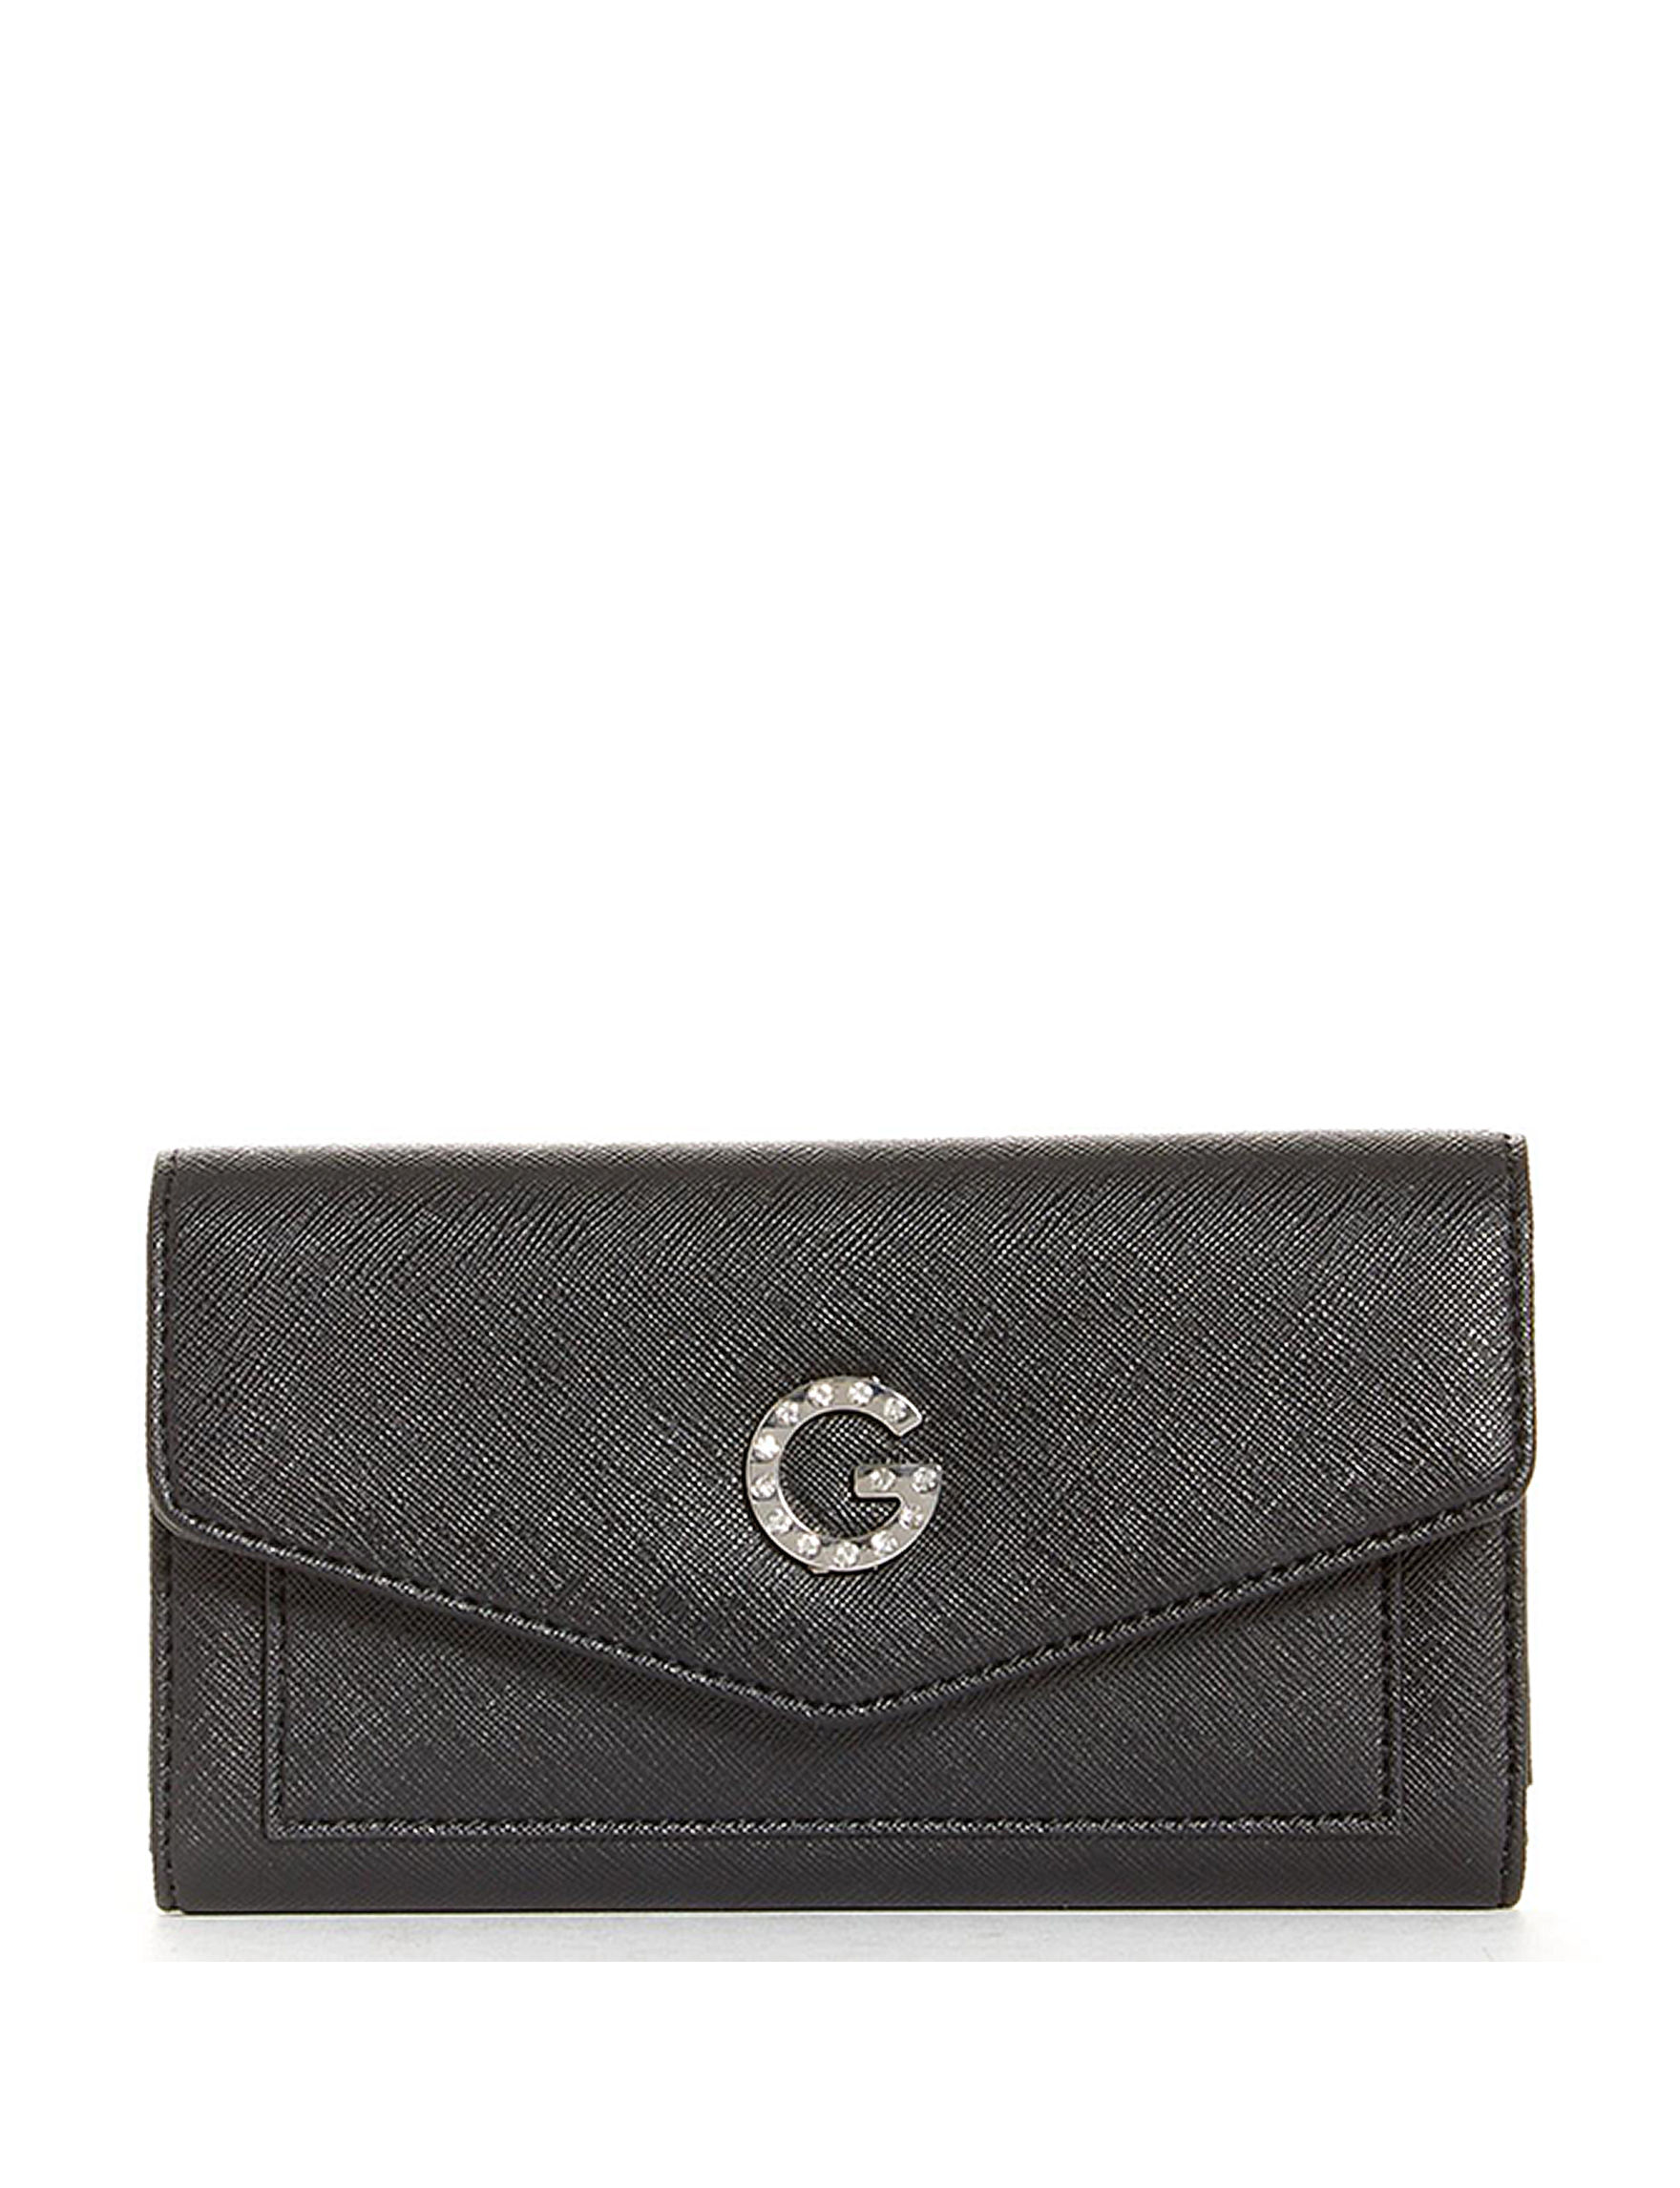 G by Guess Black Glitter